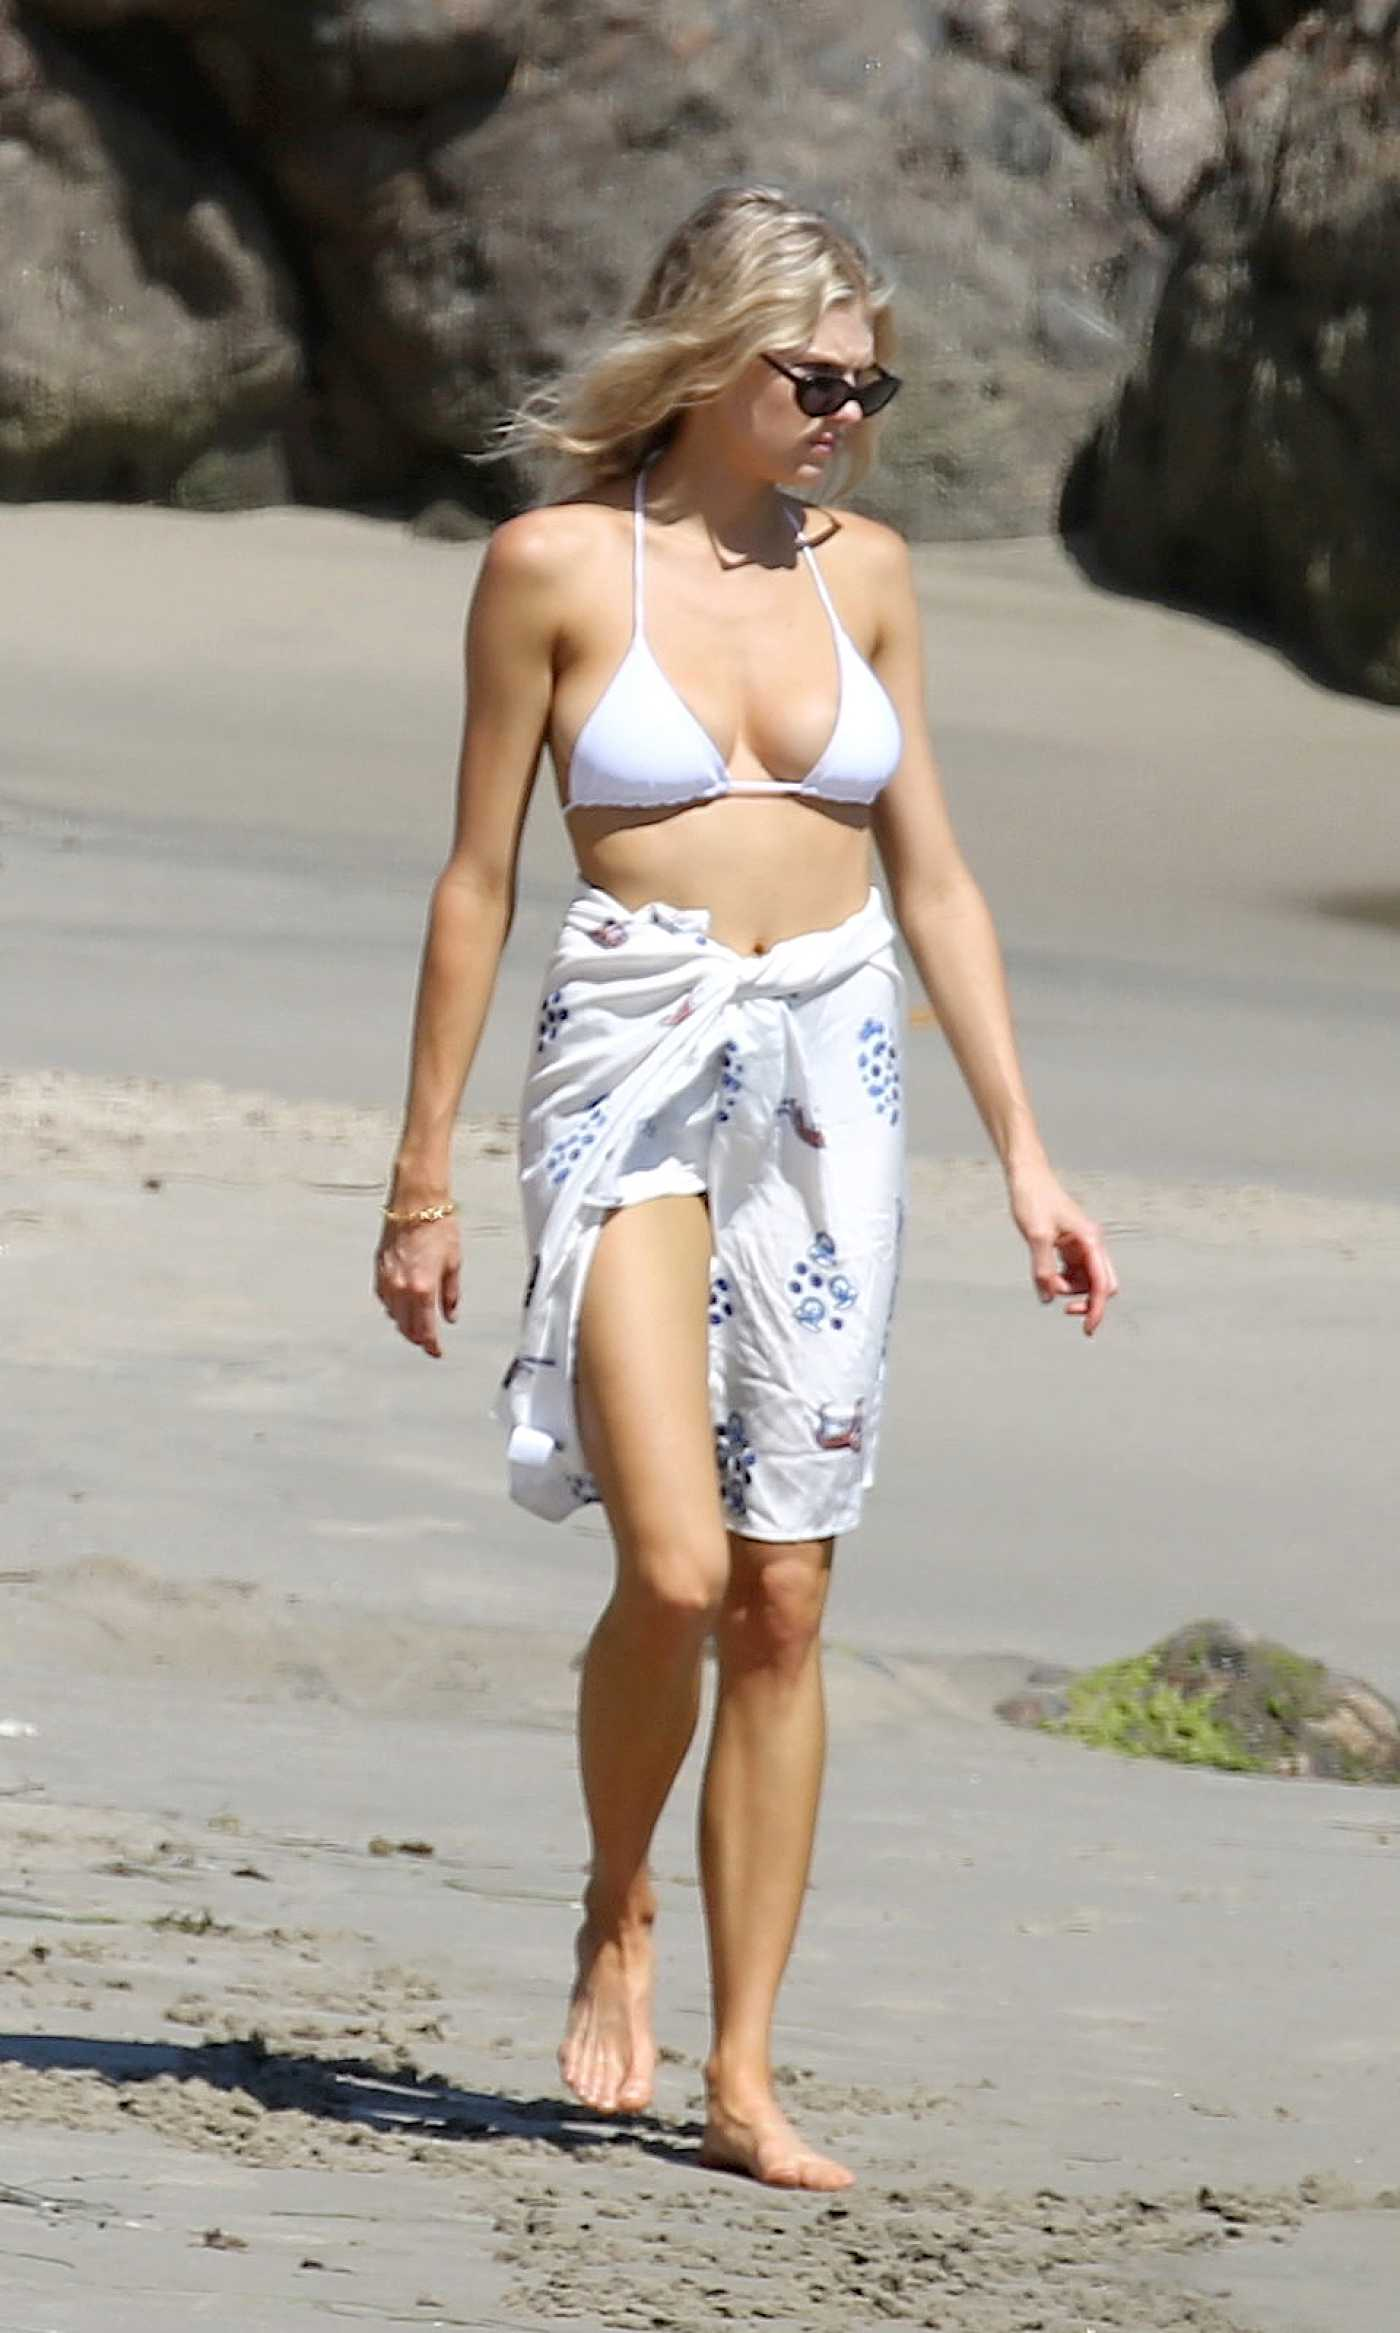 Charlotte Mckinney in a White Bikini on the Beach in Los Angeles 08/28/2020